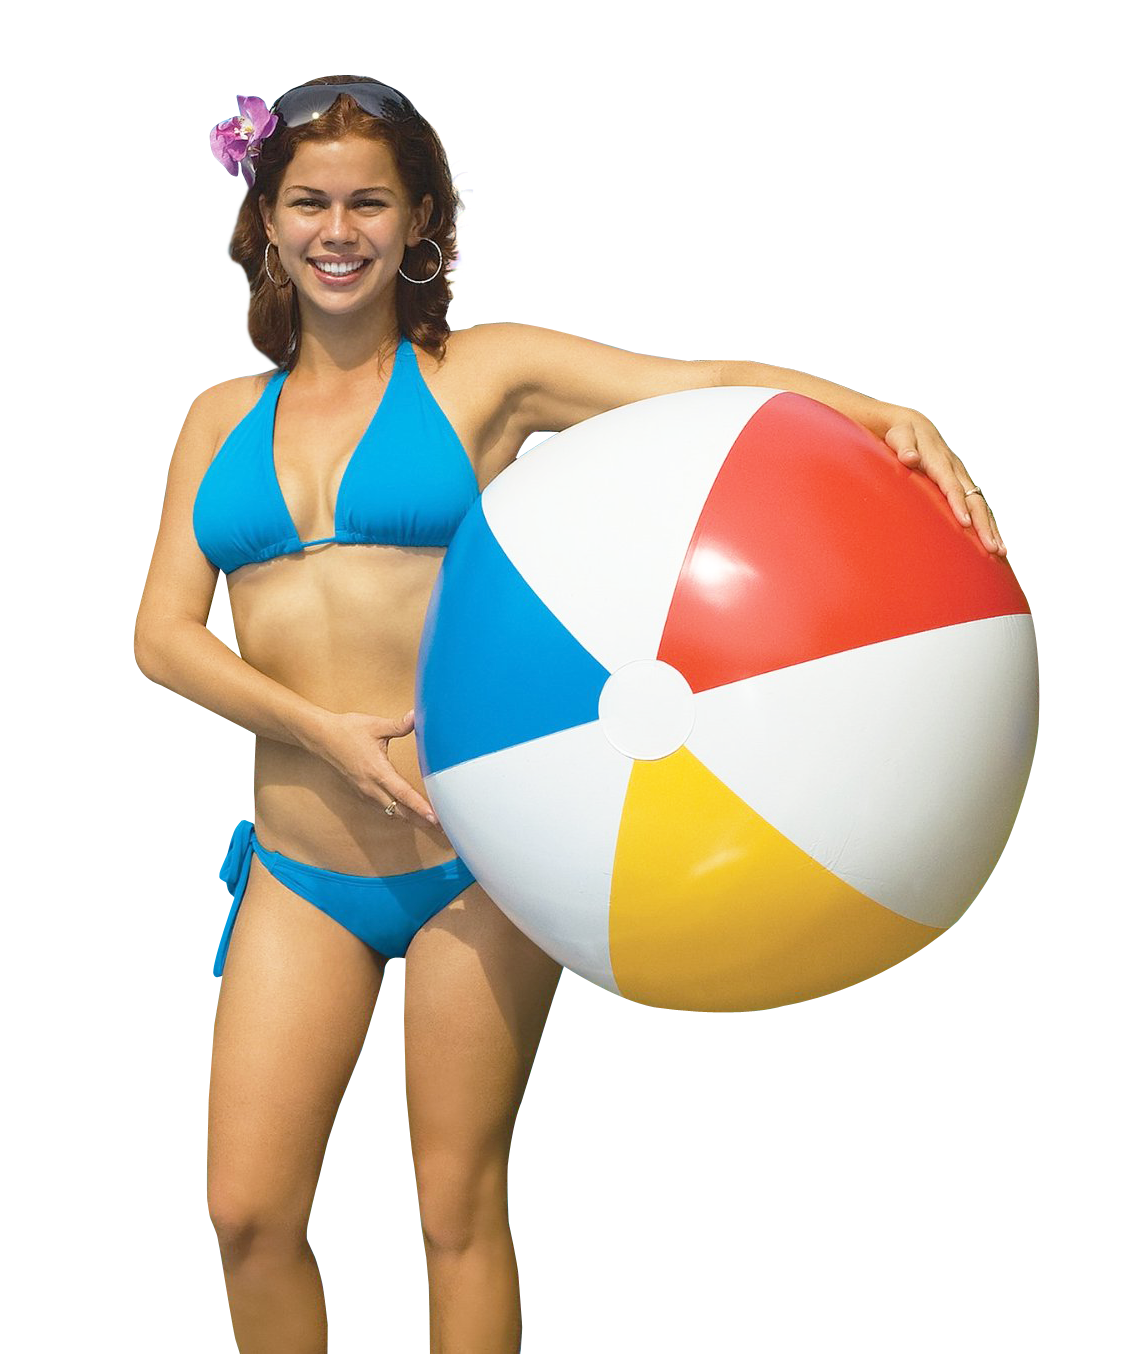 People beach png. Woman holding ball image